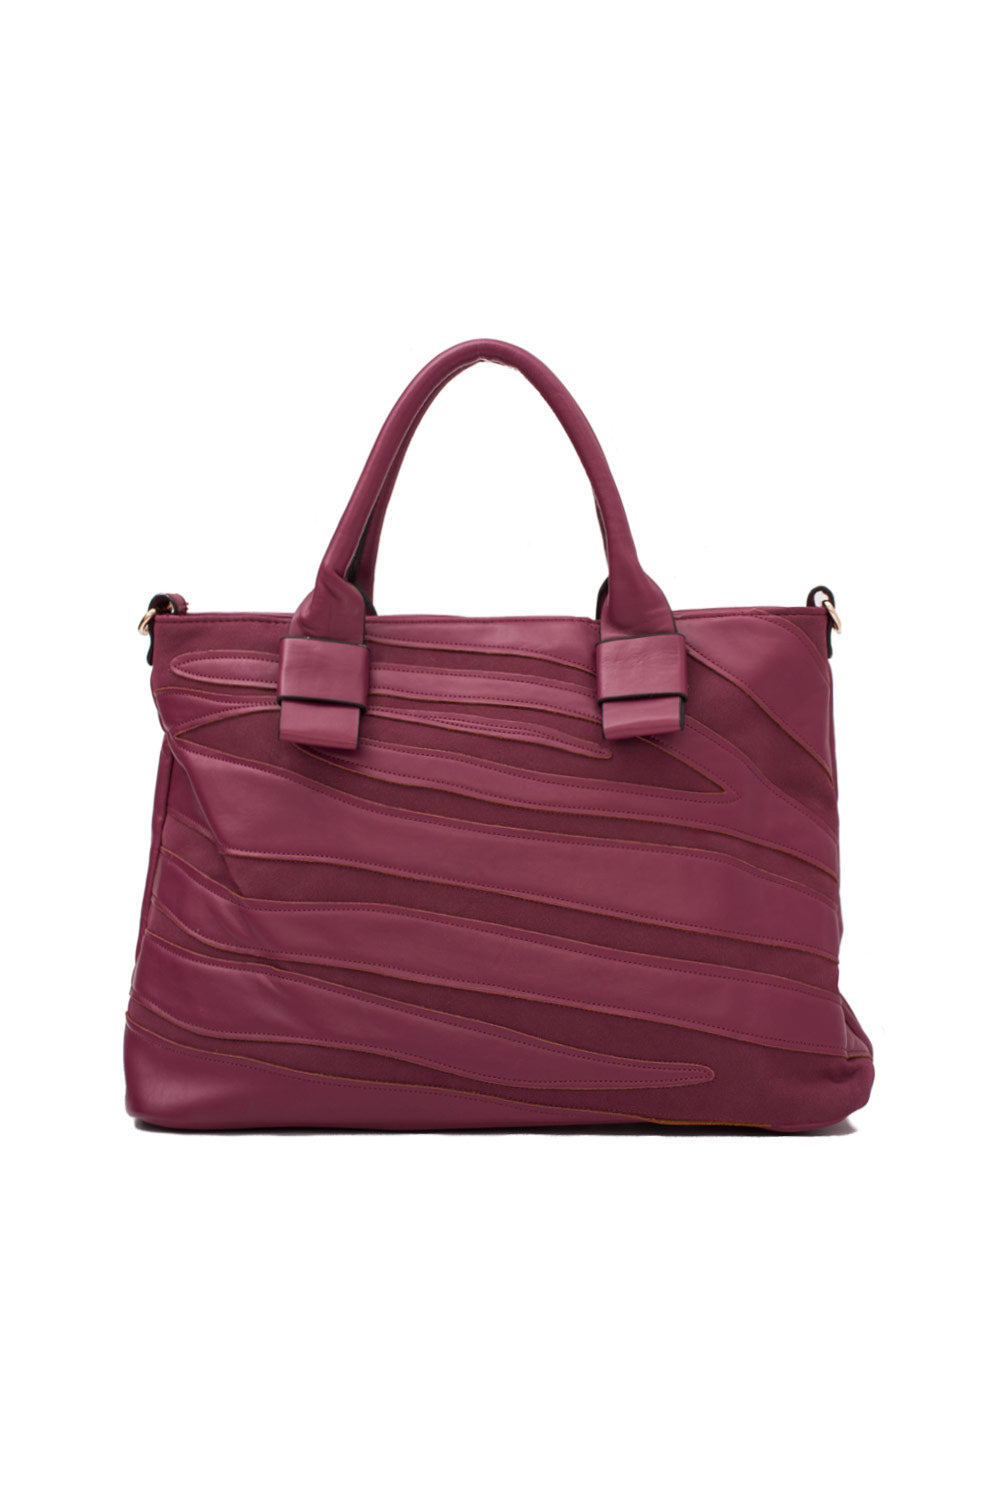 Type 3 Rich Raspberry Handbag